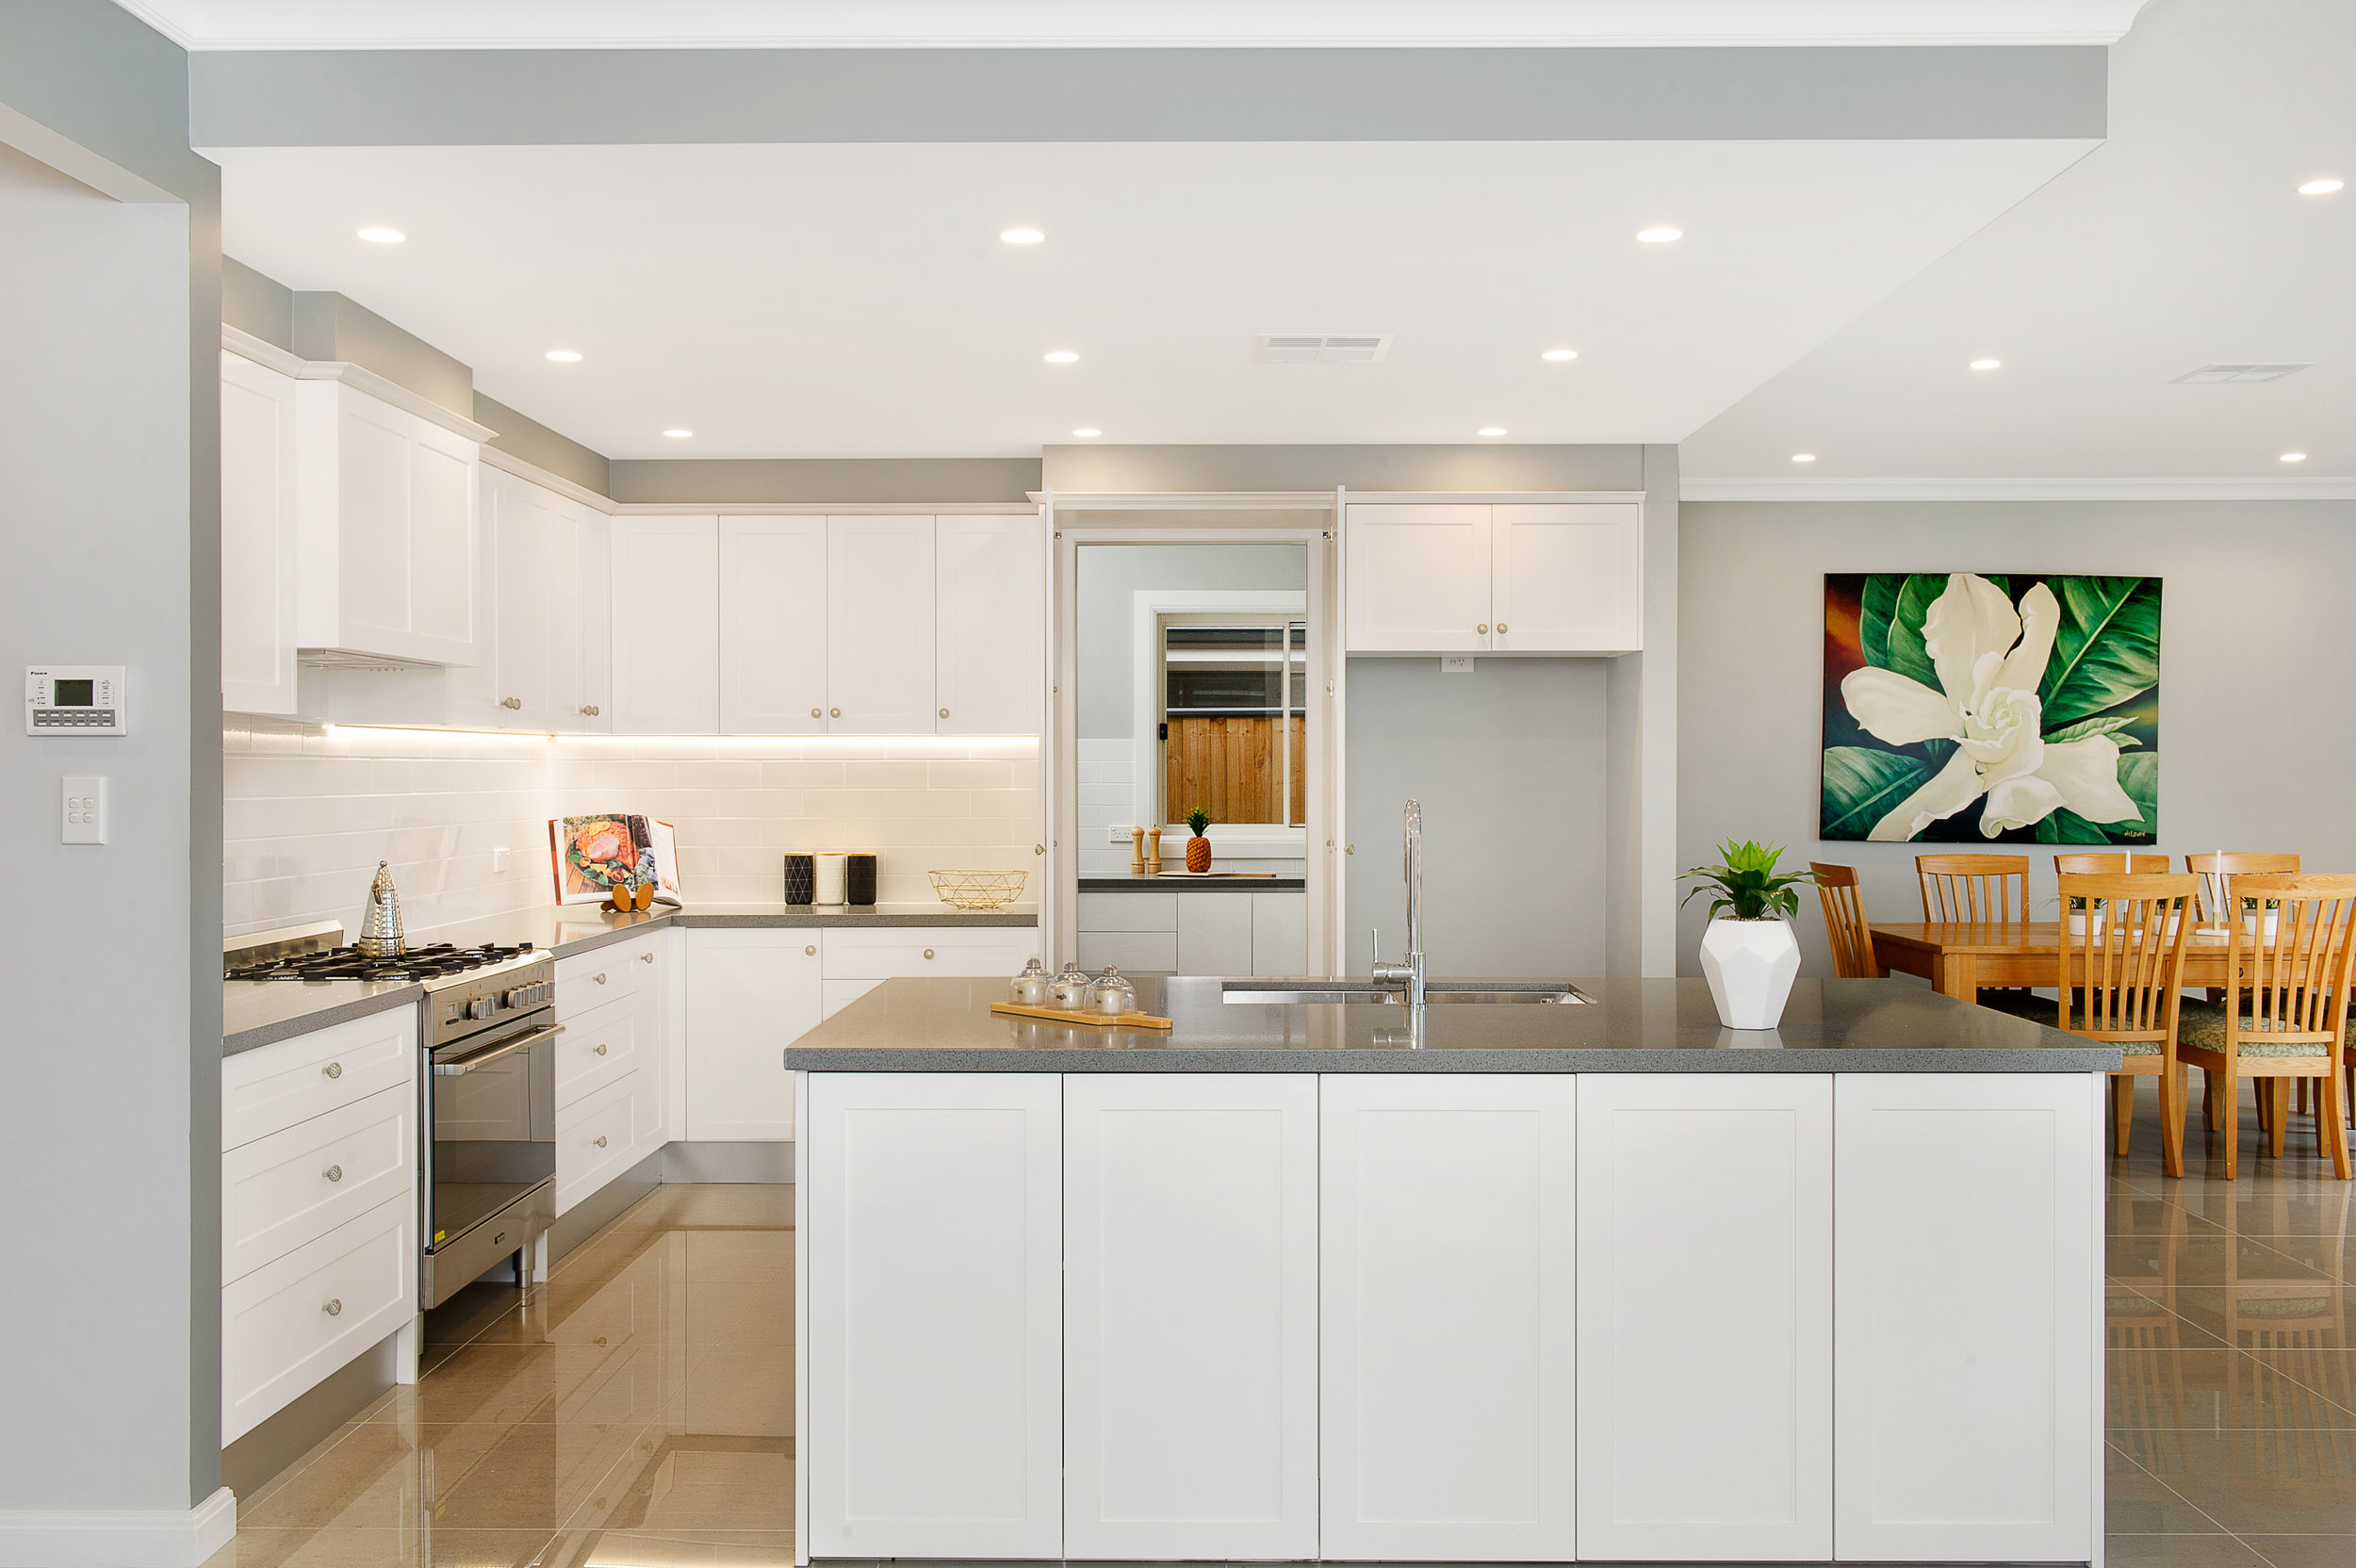 Kiama Shellharbour Gerringong Berry Wollongong South Coast Illawarra Commercial Photographer, architectural photographer, real estate photographer - kitchen